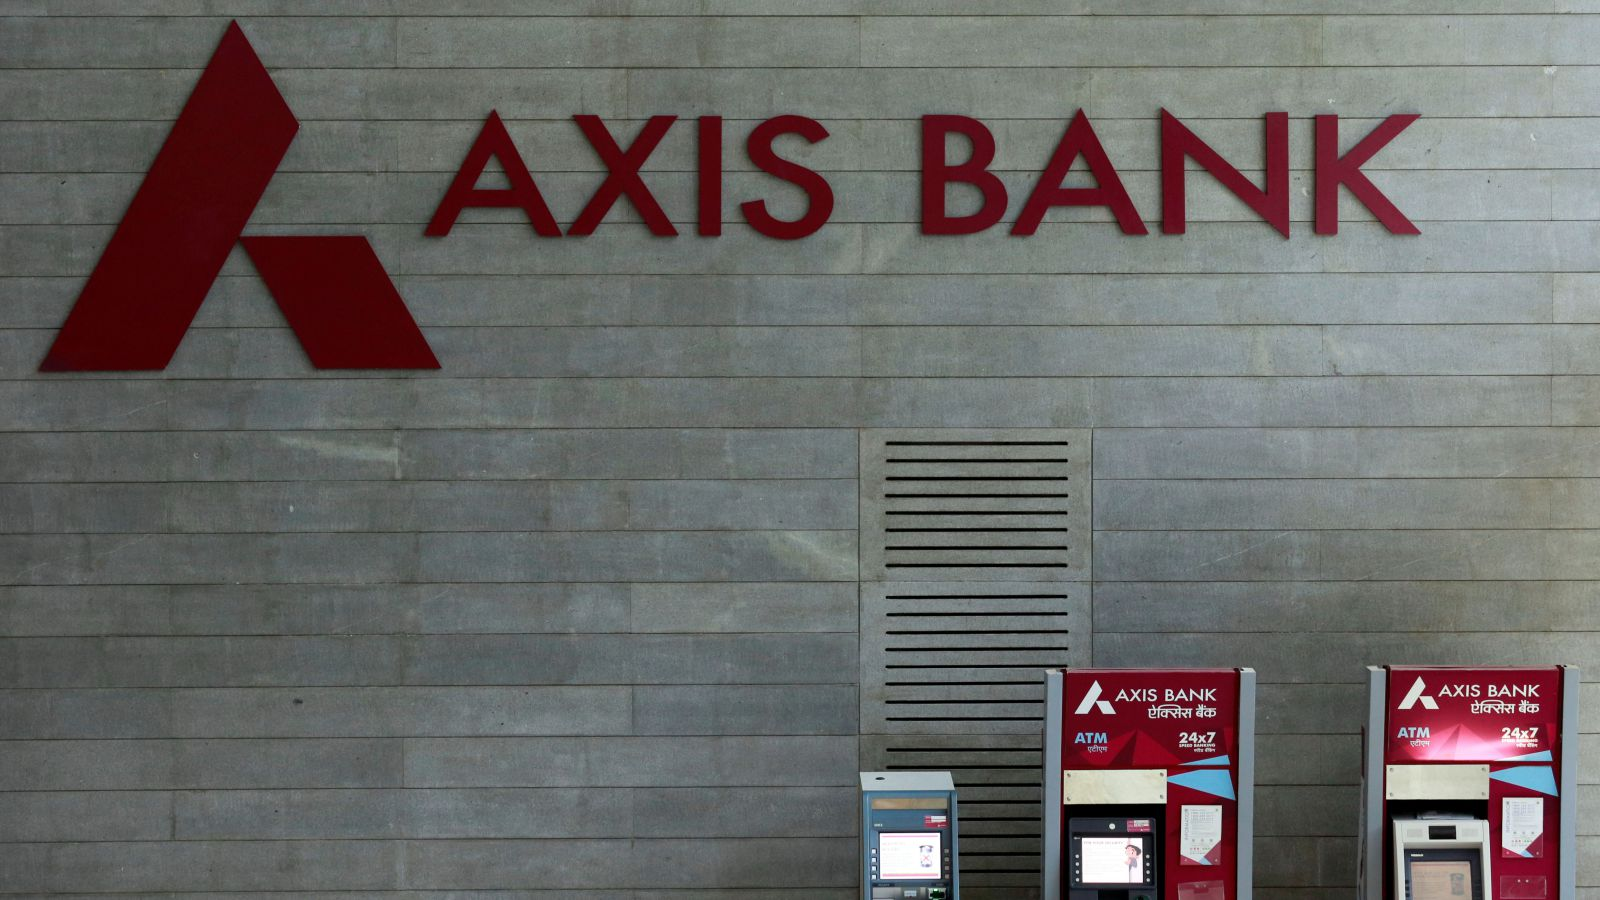 Axis Bank's logo is seen next to ATM machines at its corporate headquarters in Mumbai, India July 25, 2017.